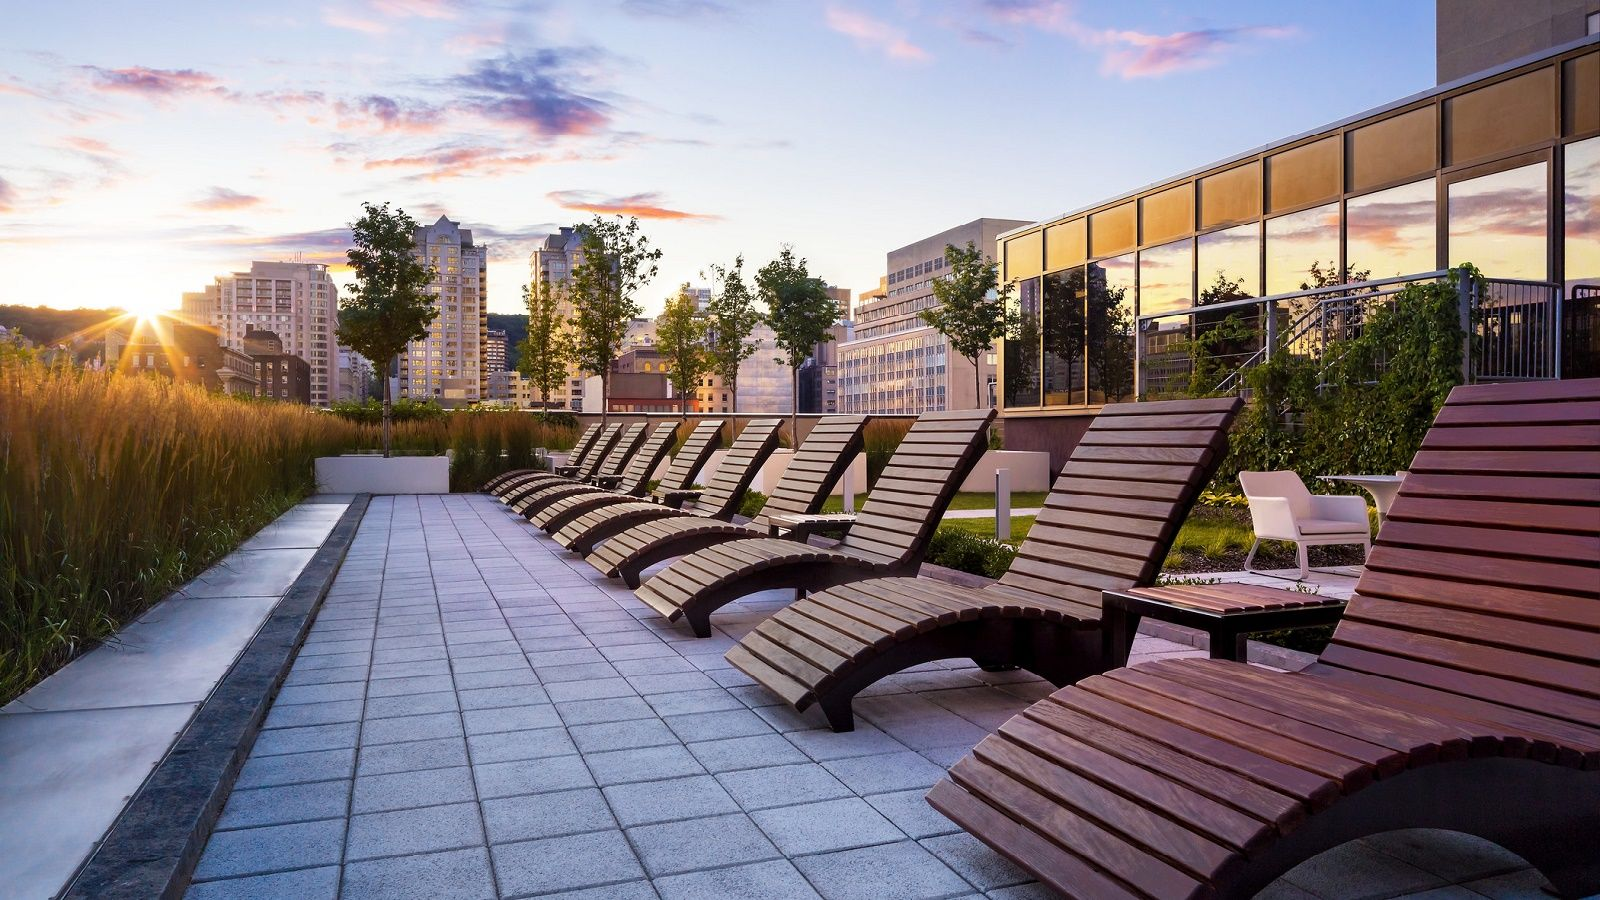 Terrace at Le Centre Sheraton Montreal